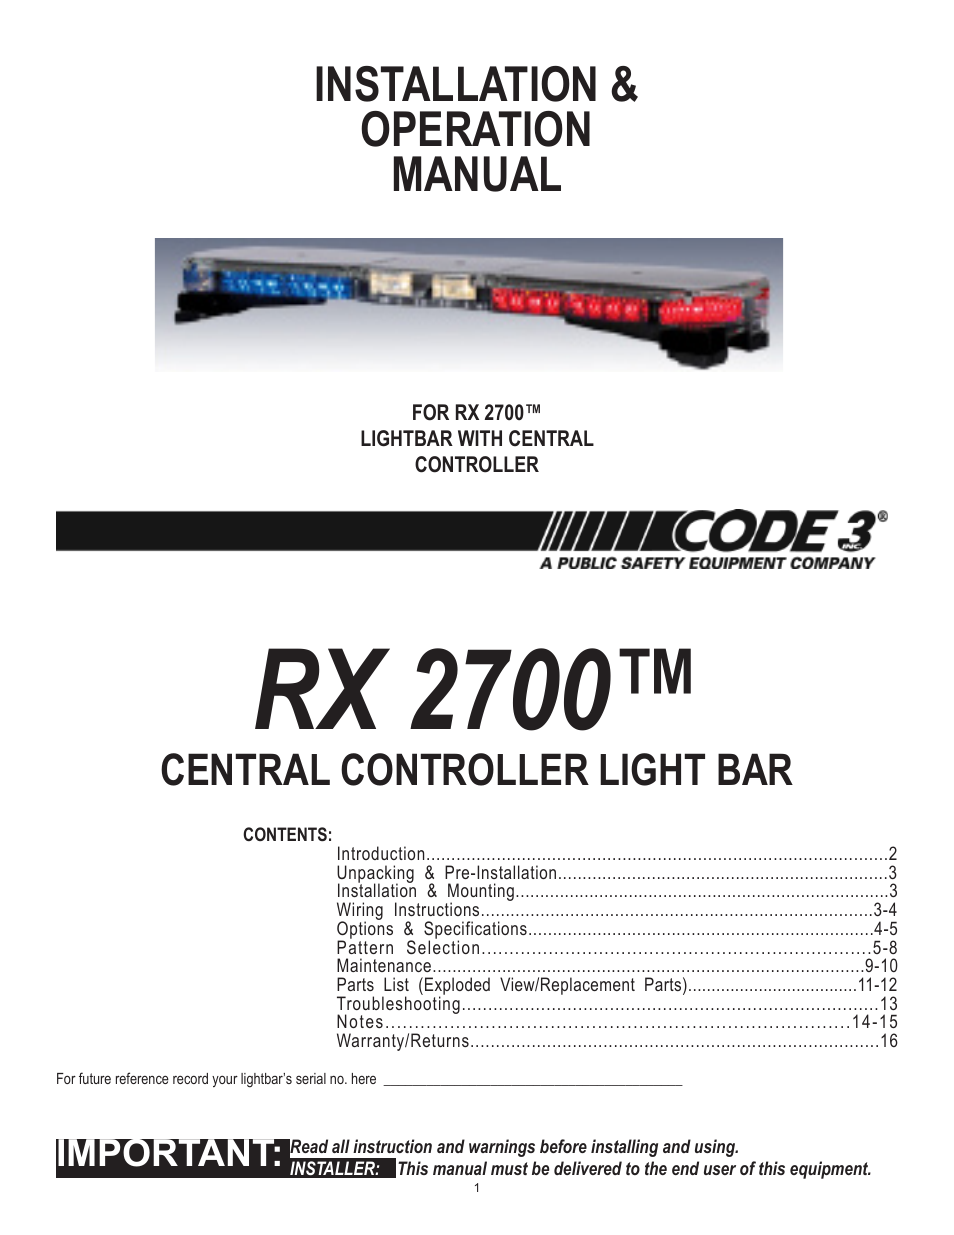 code 3 rx 2700cc page1 code 3 arrowstik wiring diagram code wiring diagrams collection code 3 supervisor wiring diagram at bayanpartner.co